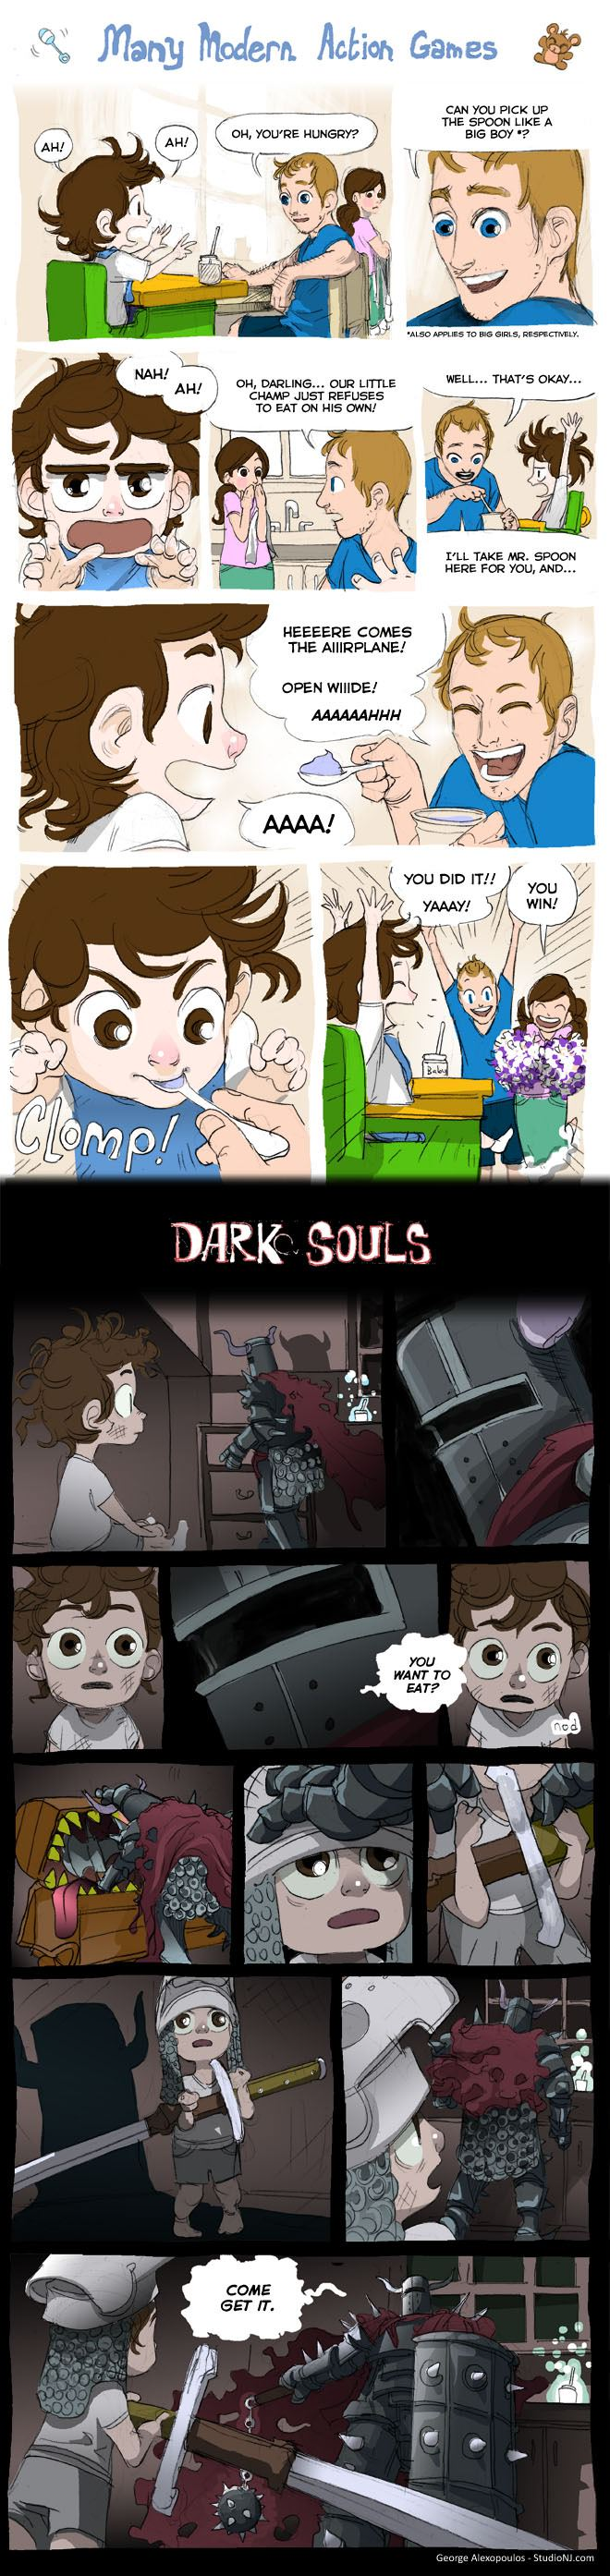 Regular Games vs. Dark Souls